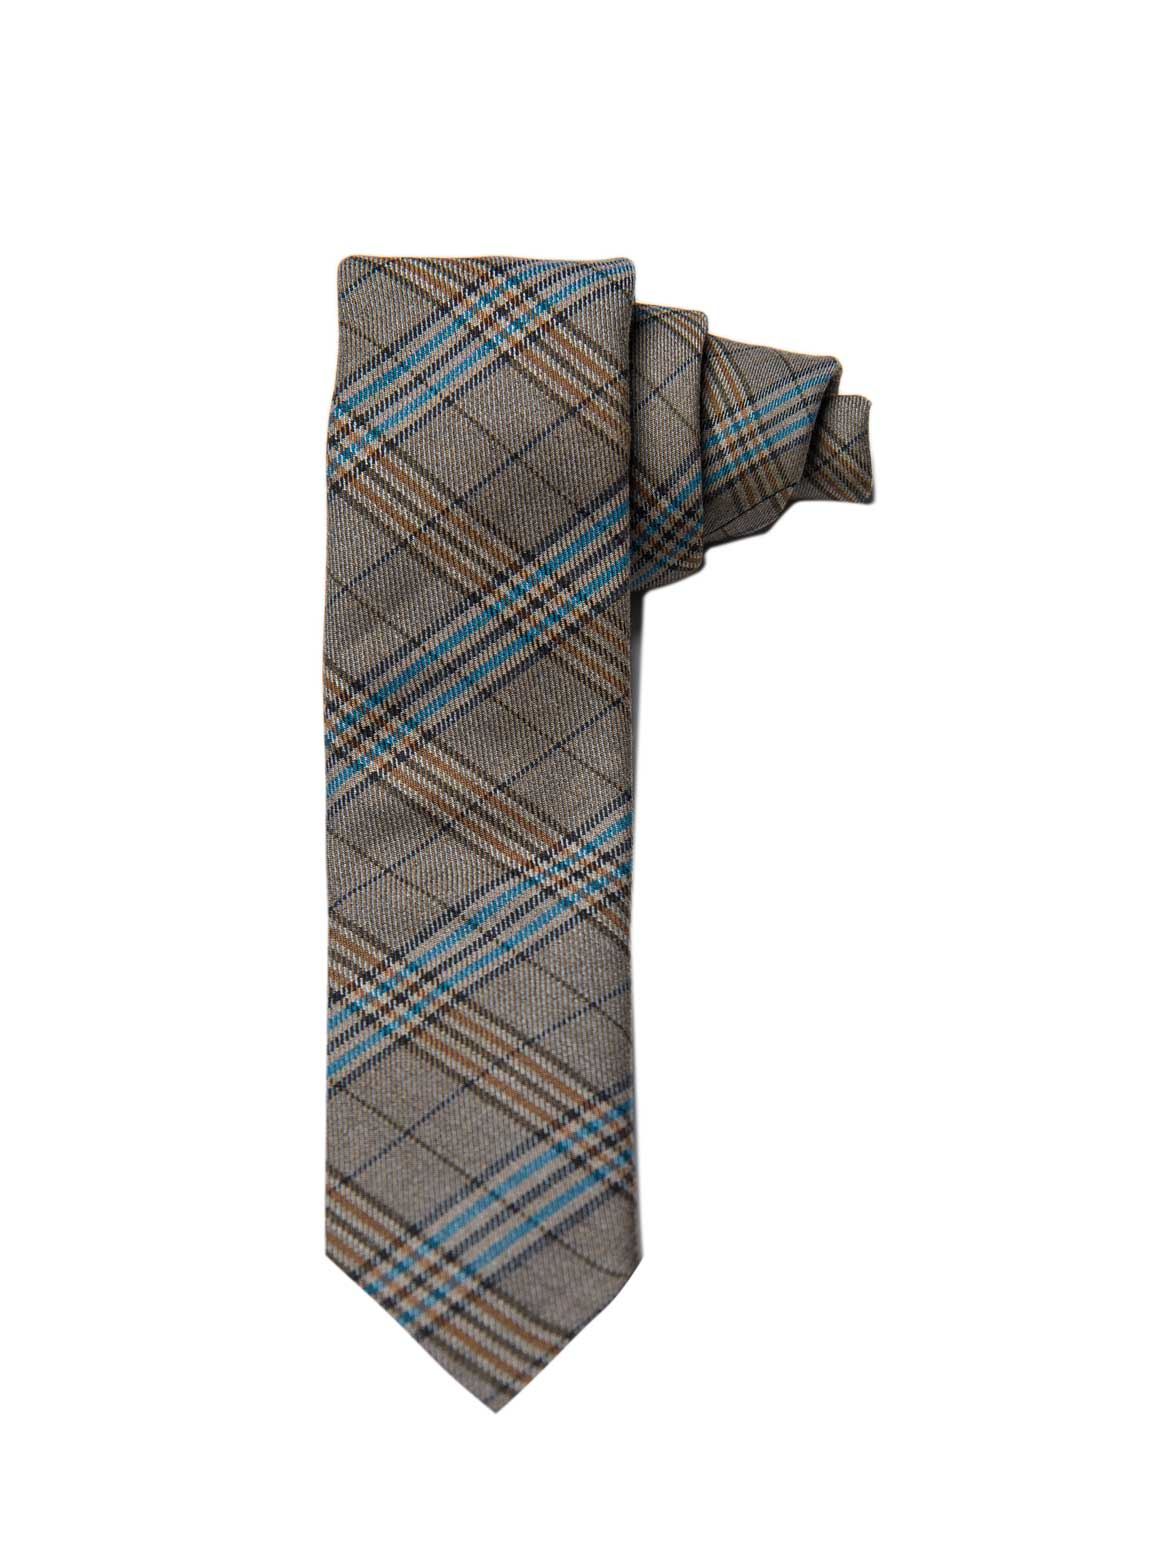 Stanley Tie - Tan & Blue Check